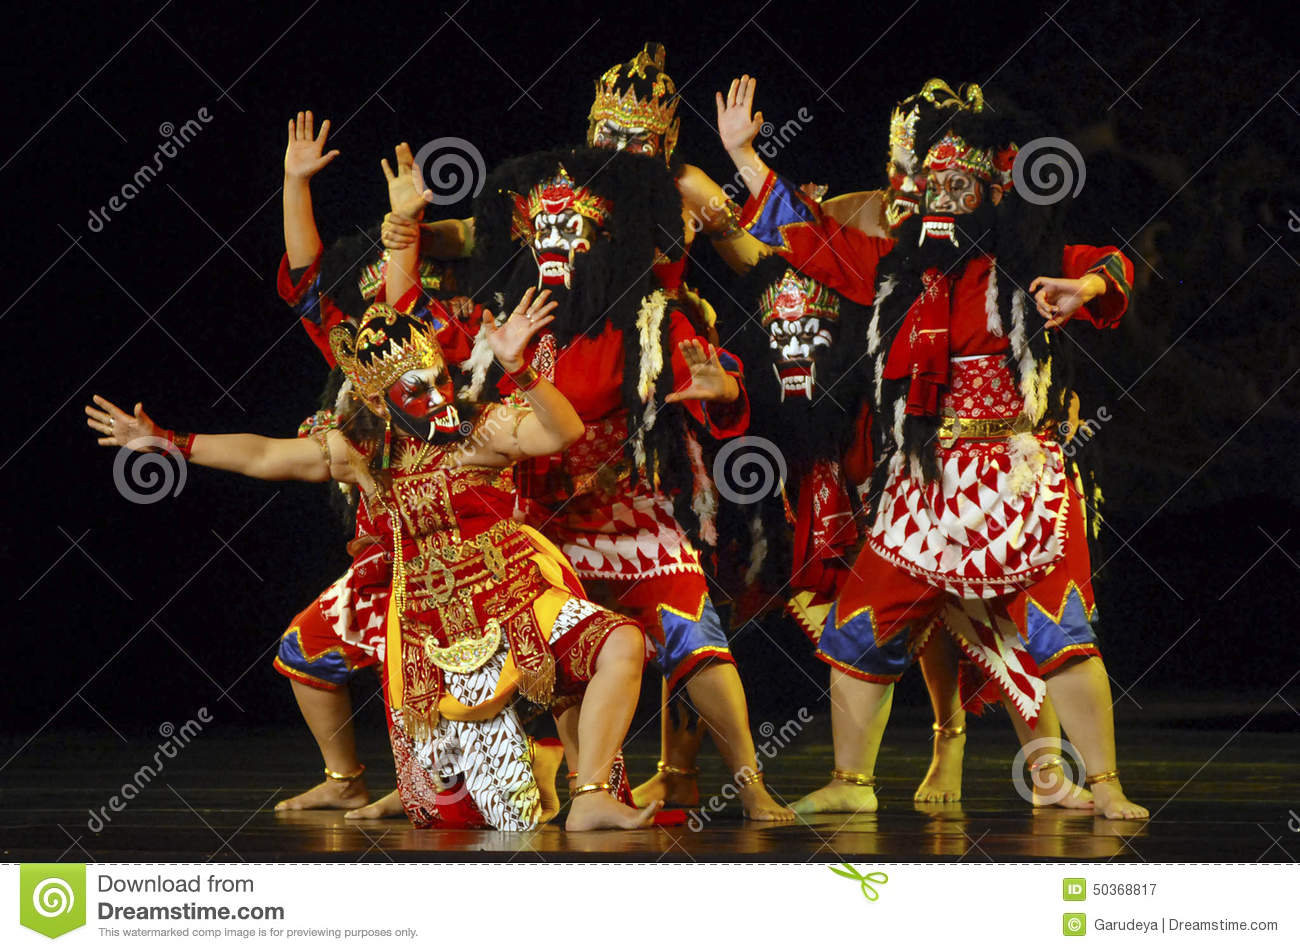 INDONESIA WAYANG WONG PERFORMANCE THEATRICAL DANCE CULTURE Editorial Photography  Image of